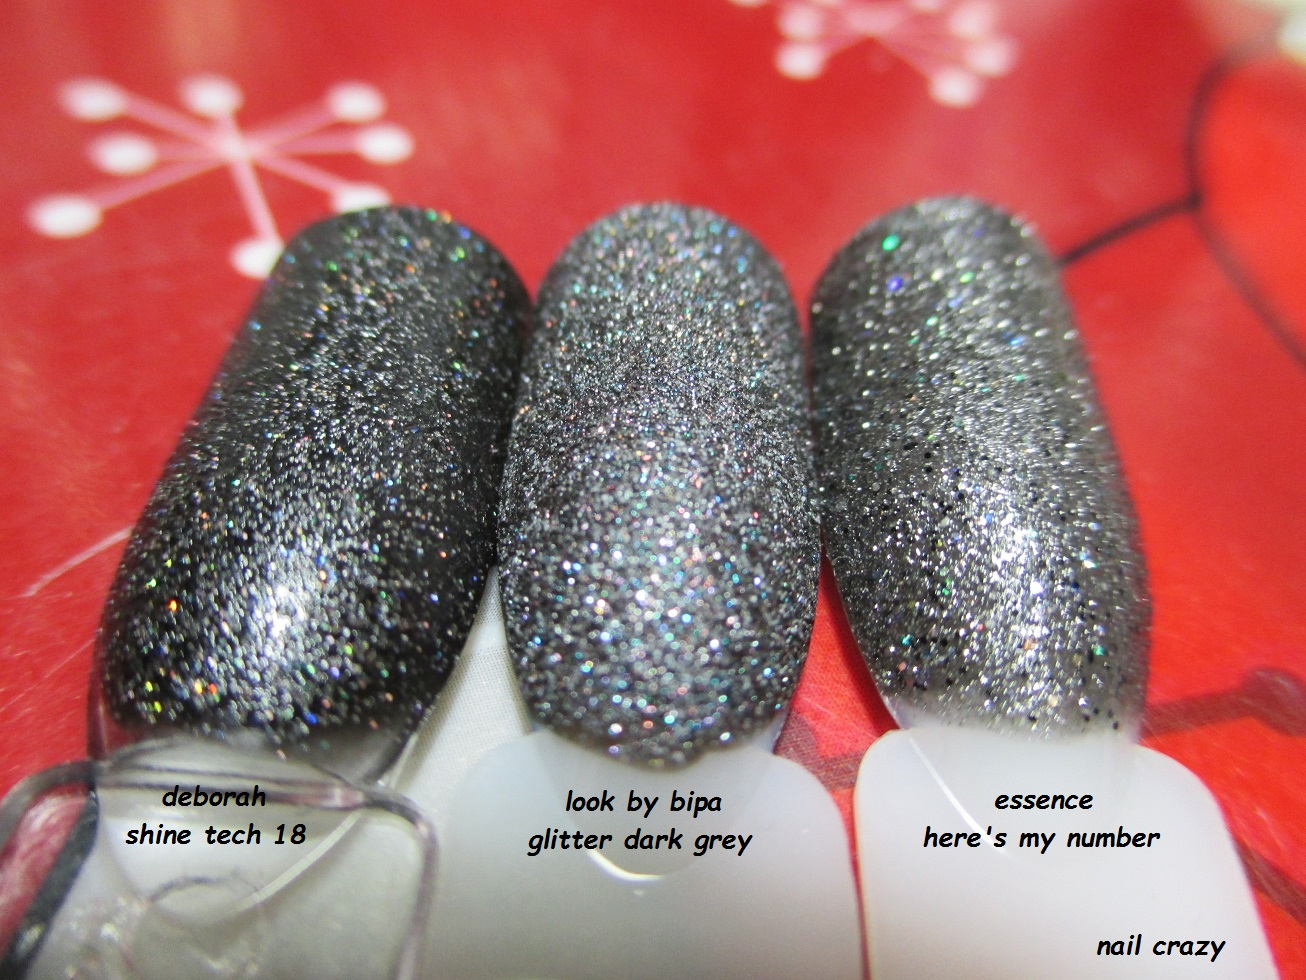 Nail crazy: Look by Bipa Glitter Dark Grey